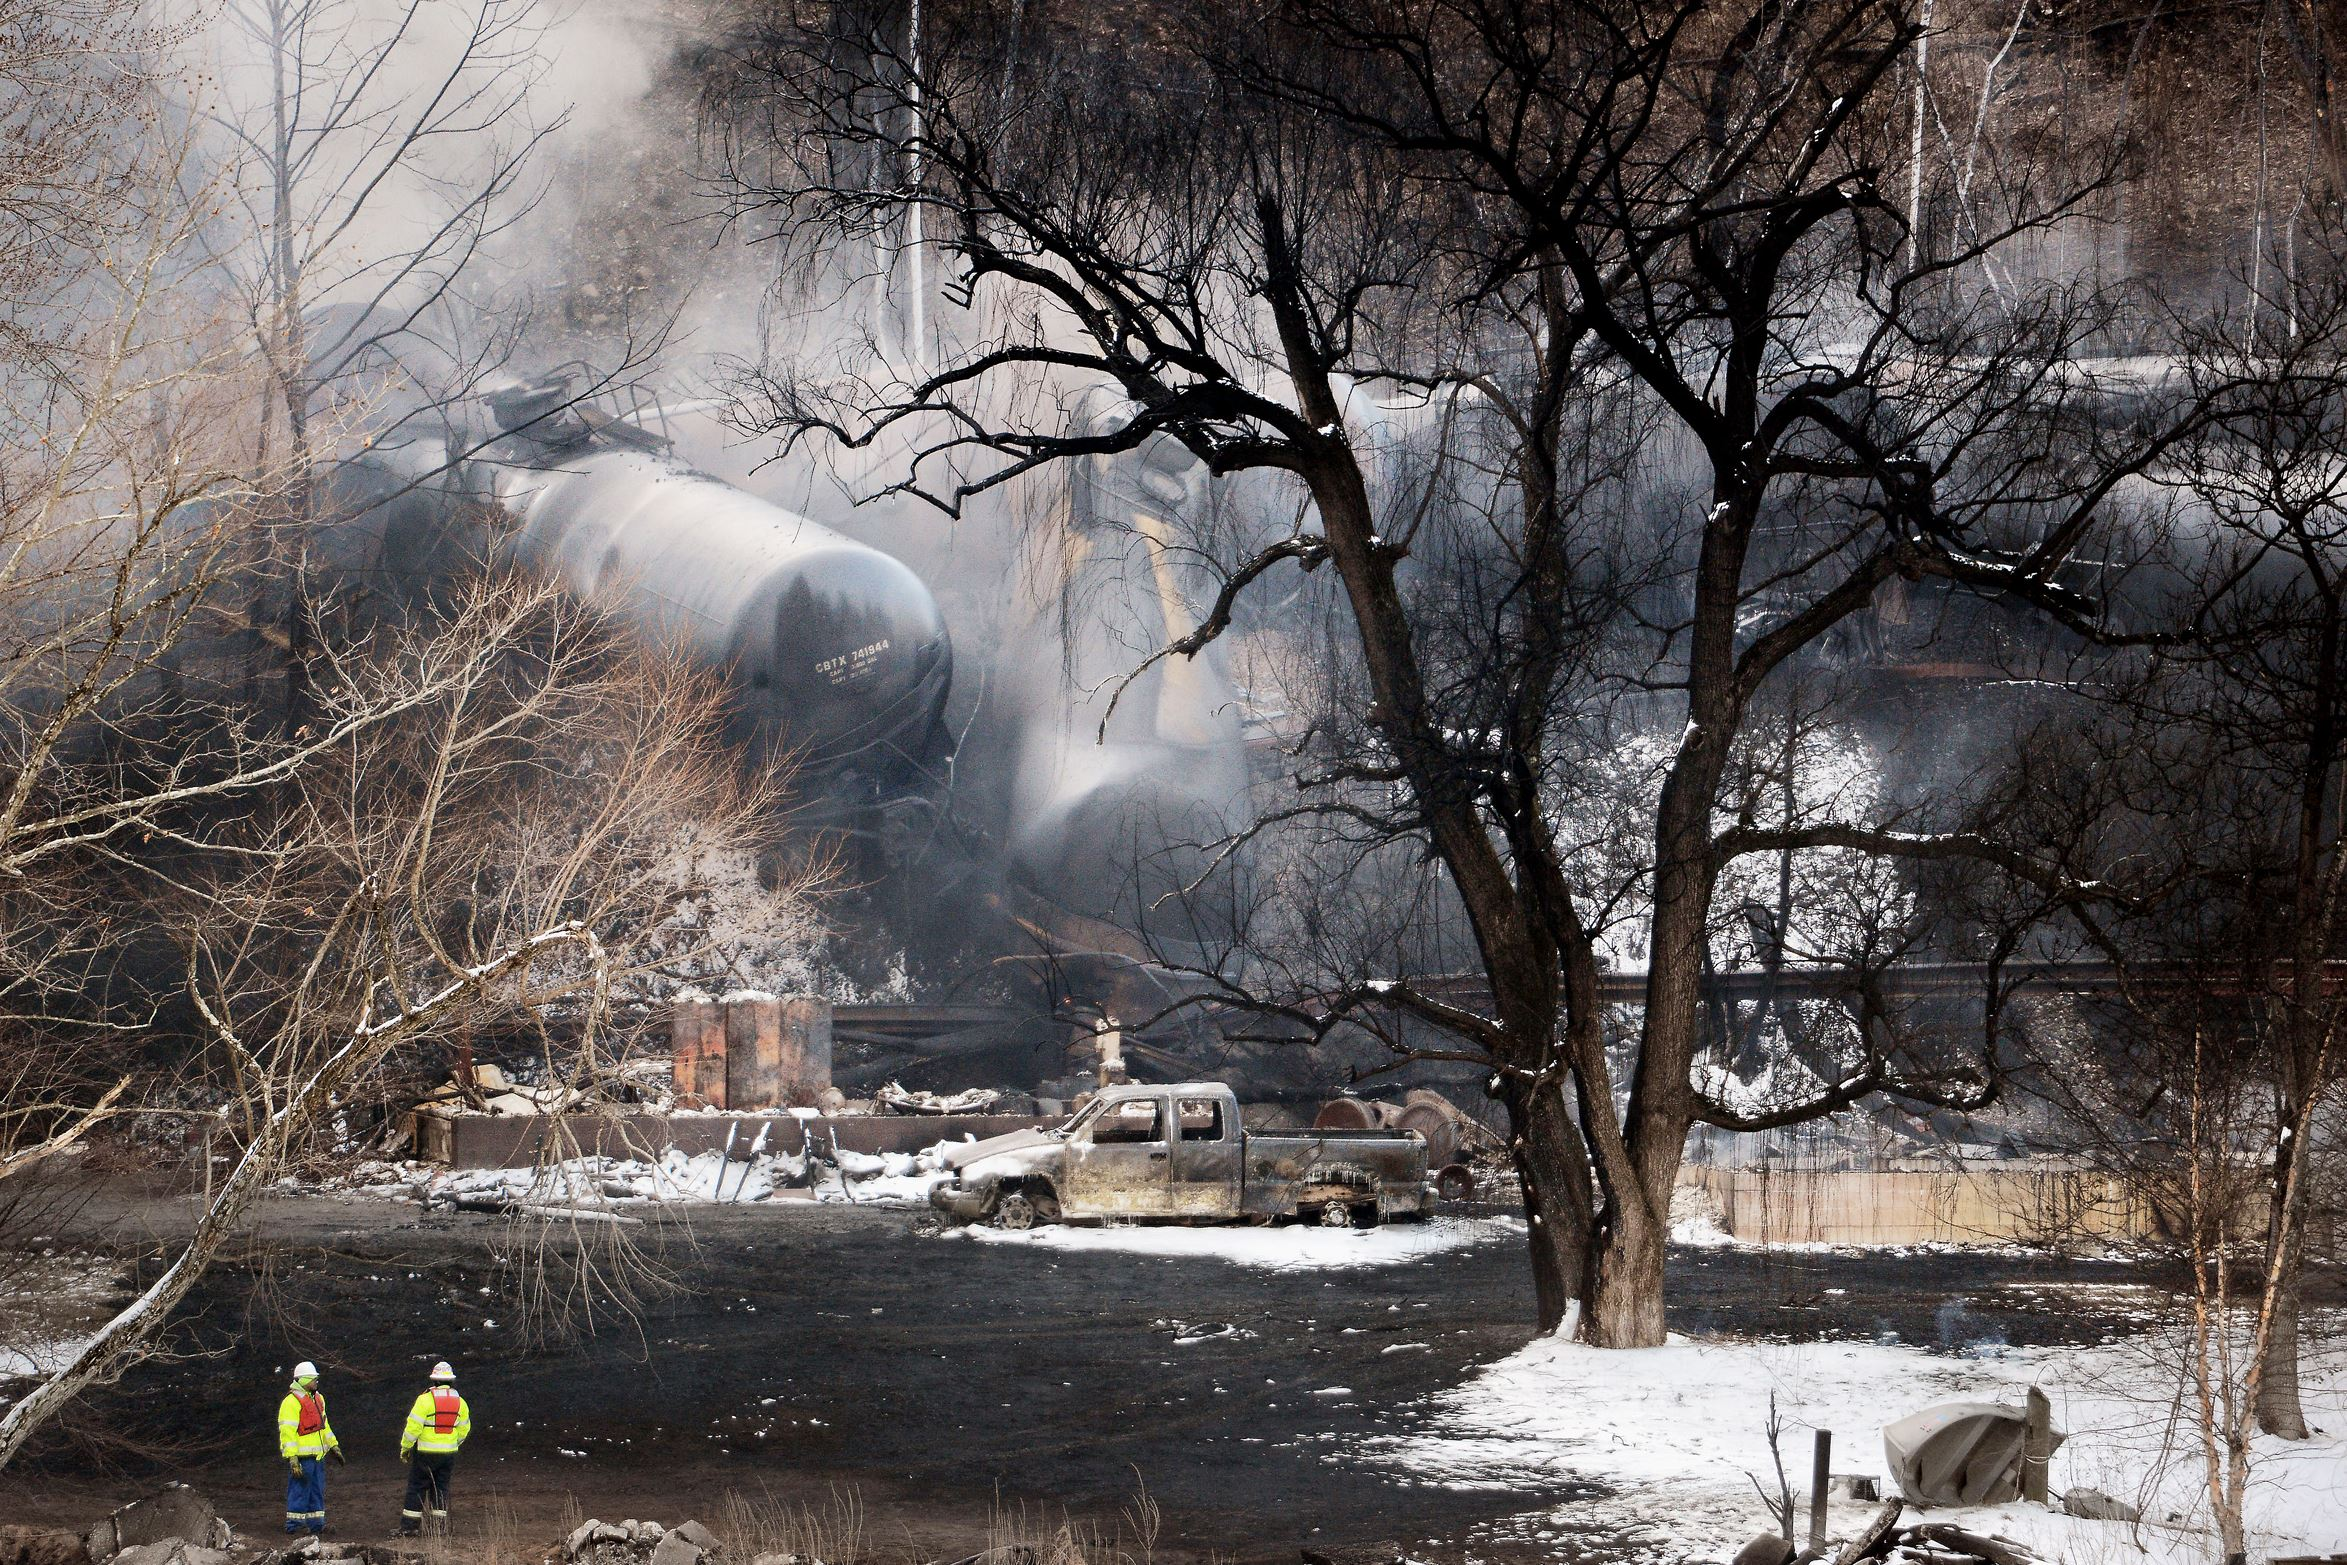 20150217MWHtrainLocal02-1 The CSX Corp train that derailed, ignited and spilled into the Kanawha River in Mount Carbon, W. Va., can be seen from across the river on Tuesday, Feb. 17, 2015.